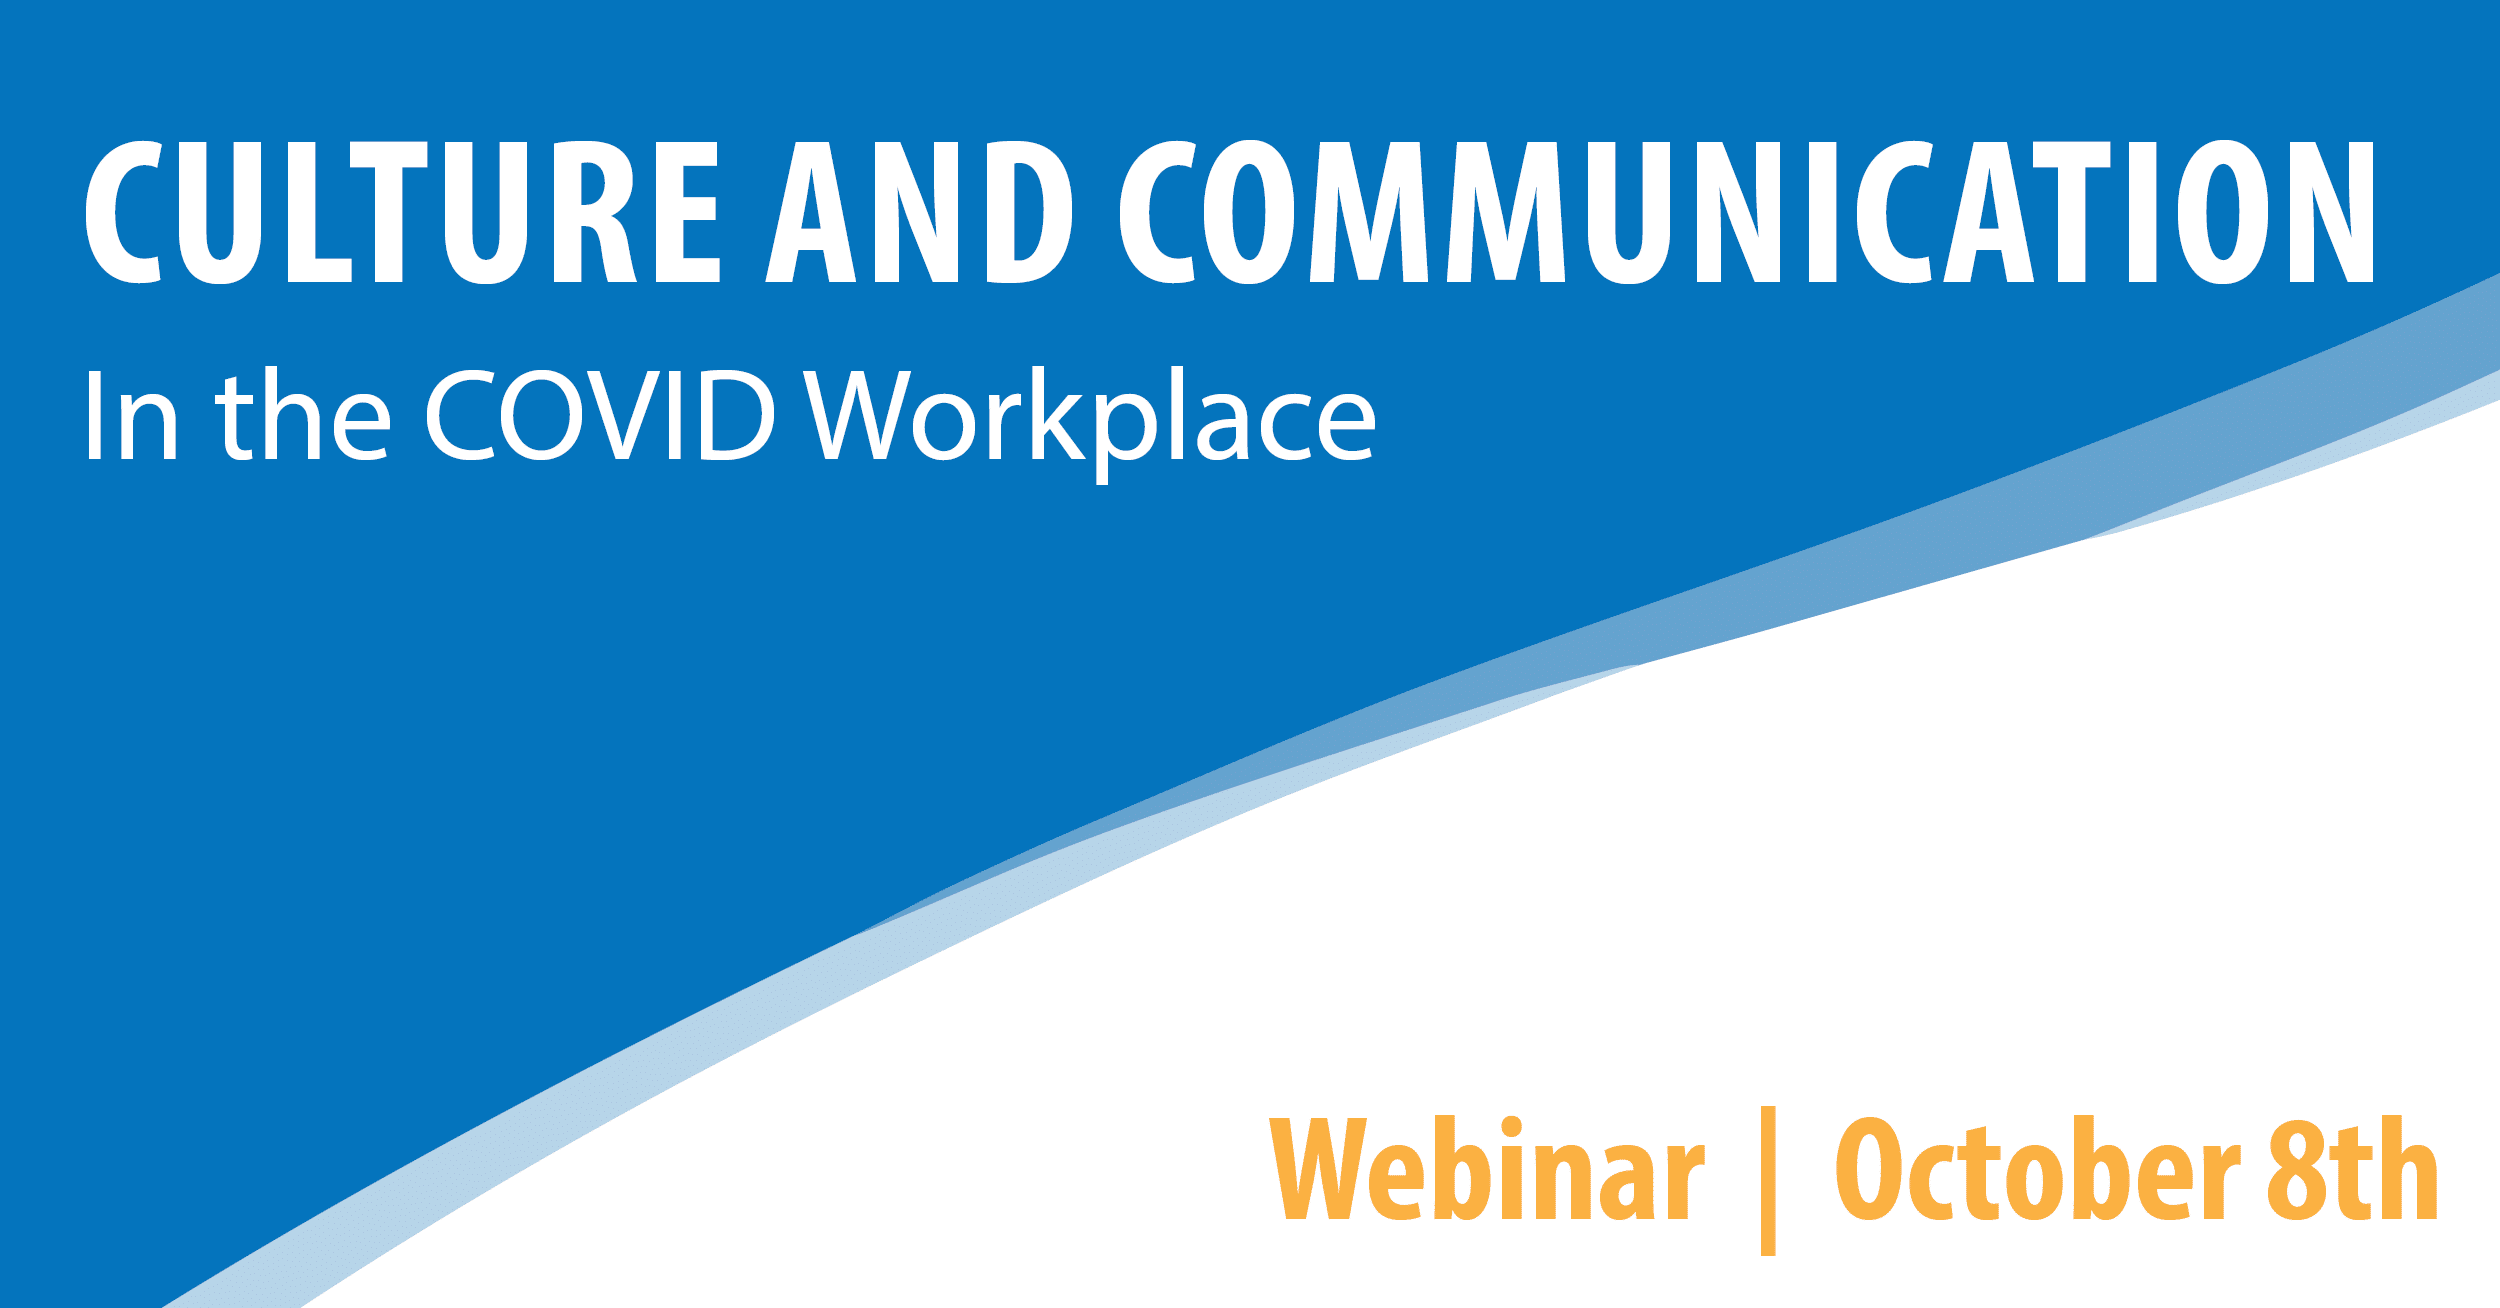 Culture and Communication in the COVID Workplace